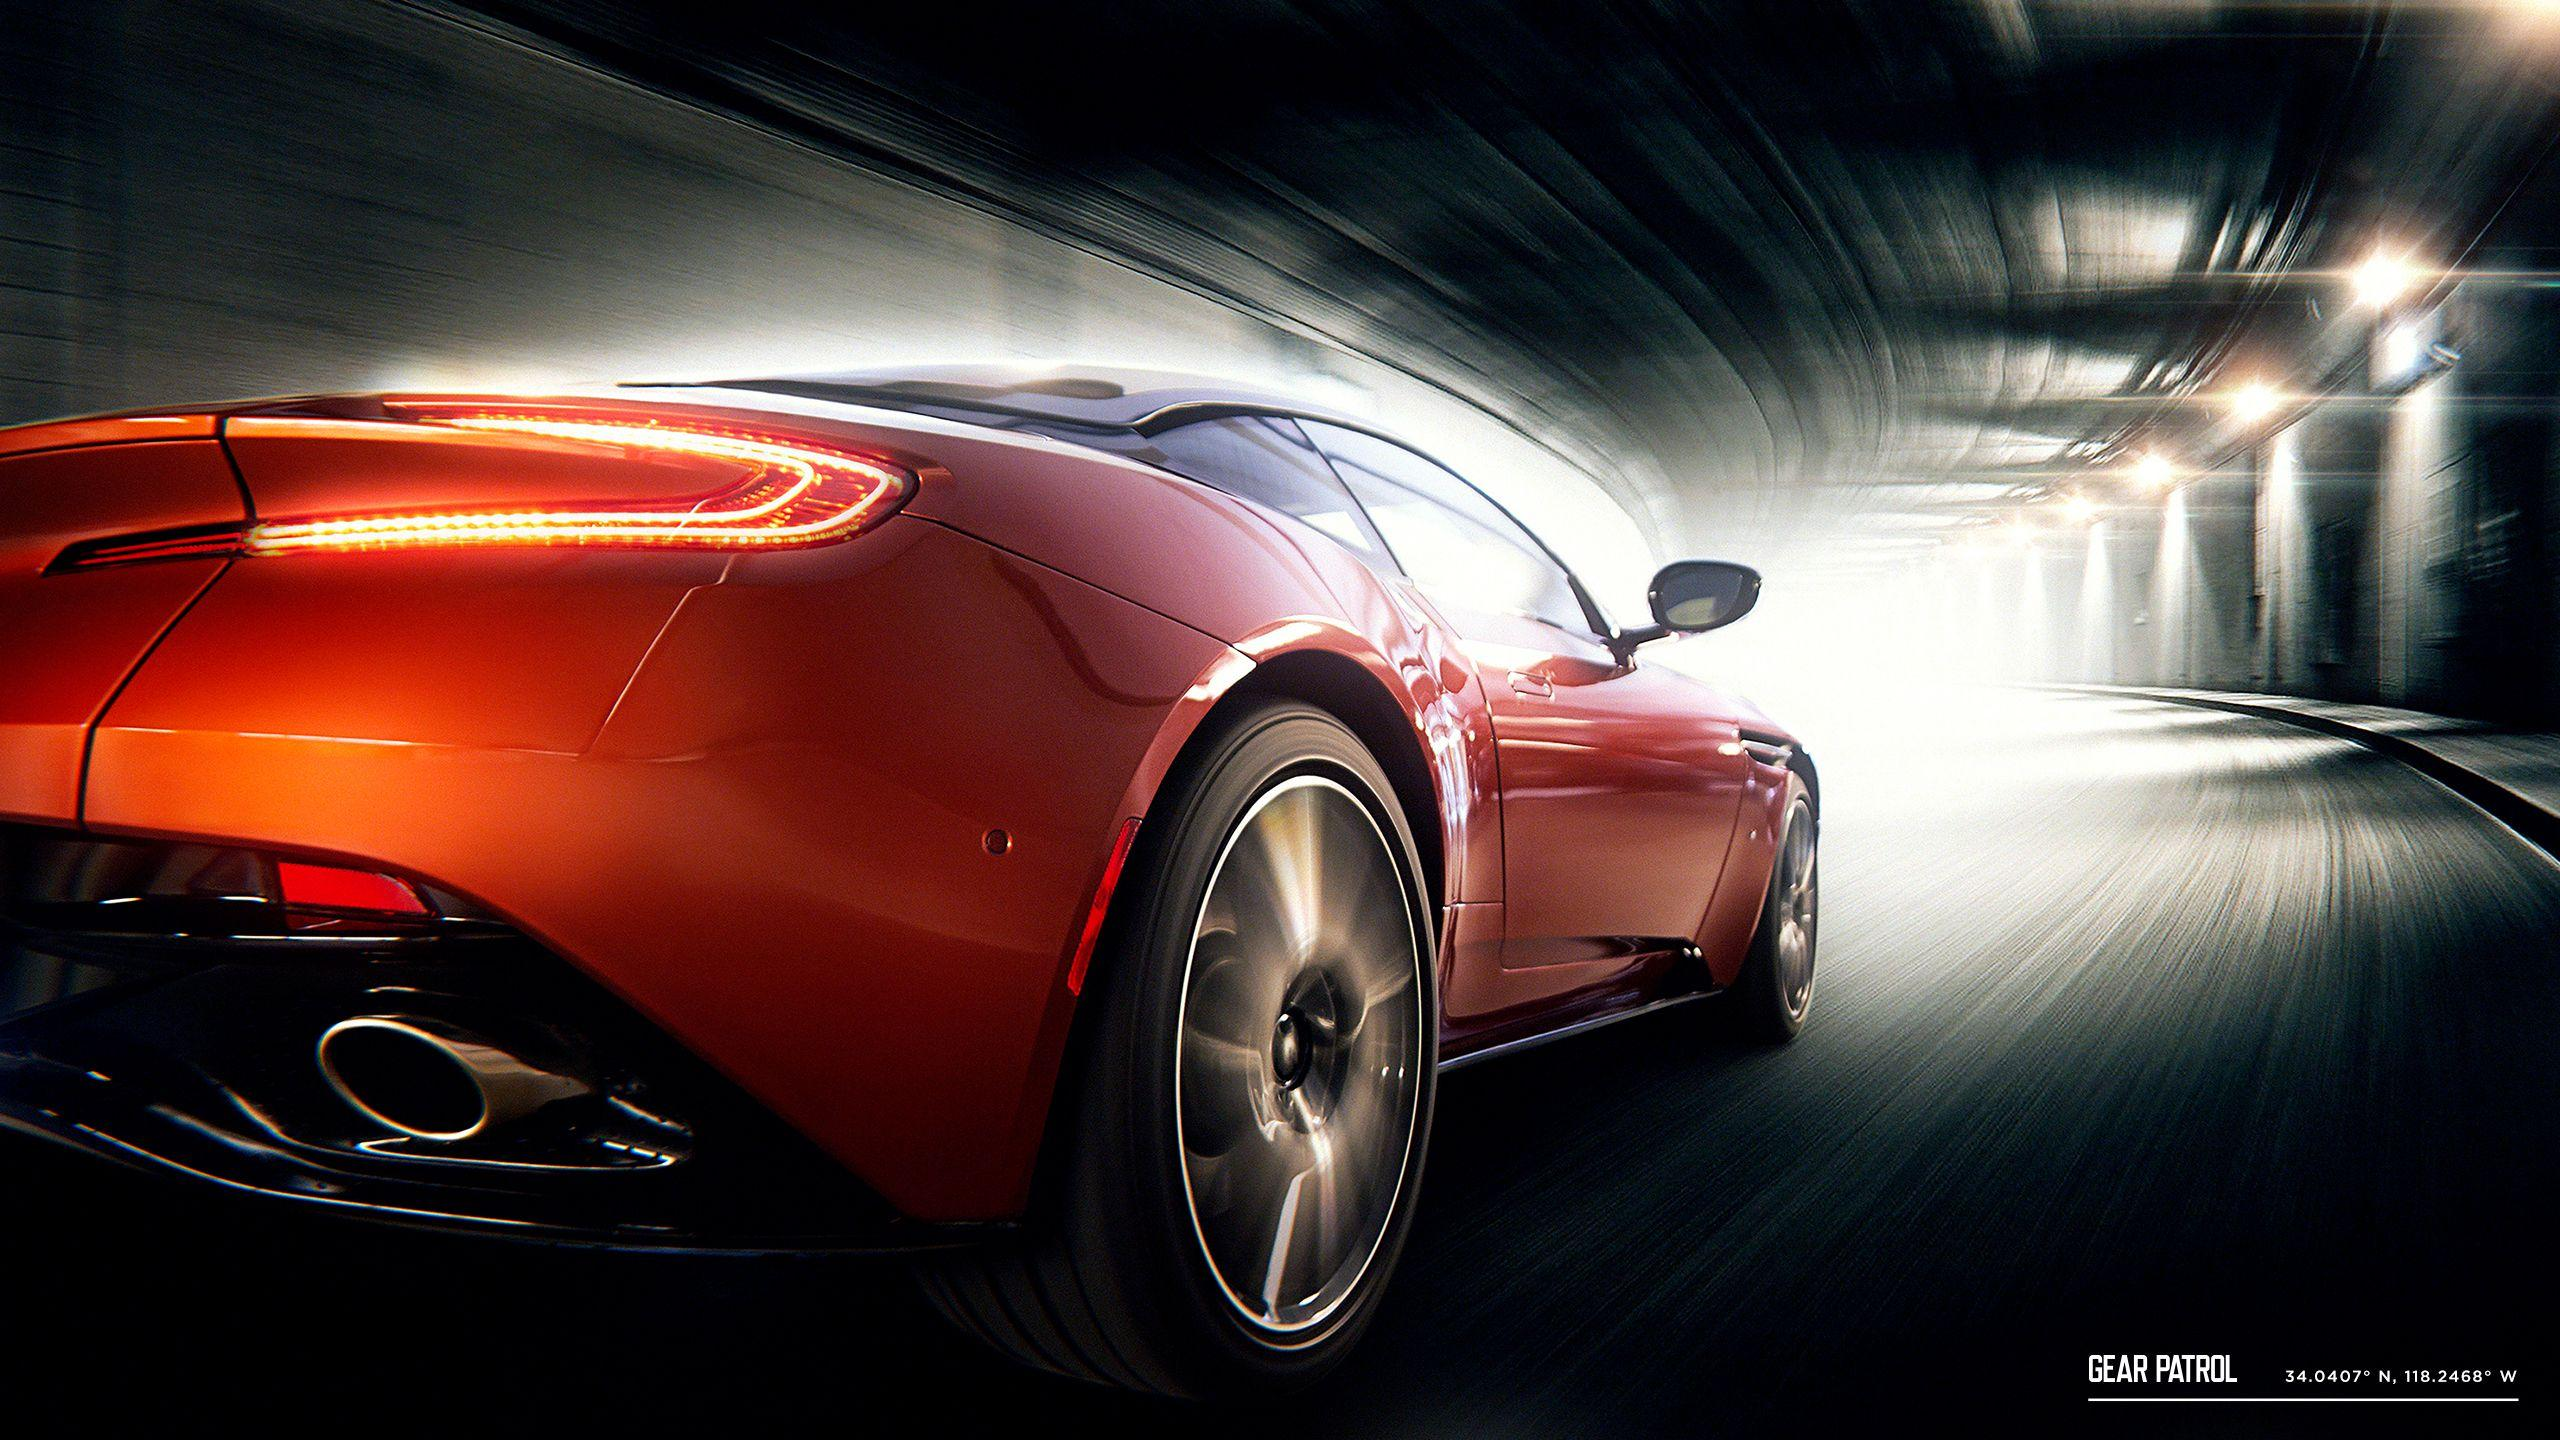 Download This Gorgeous Aston Martin DB11 Wallpapers • Gear Patrol